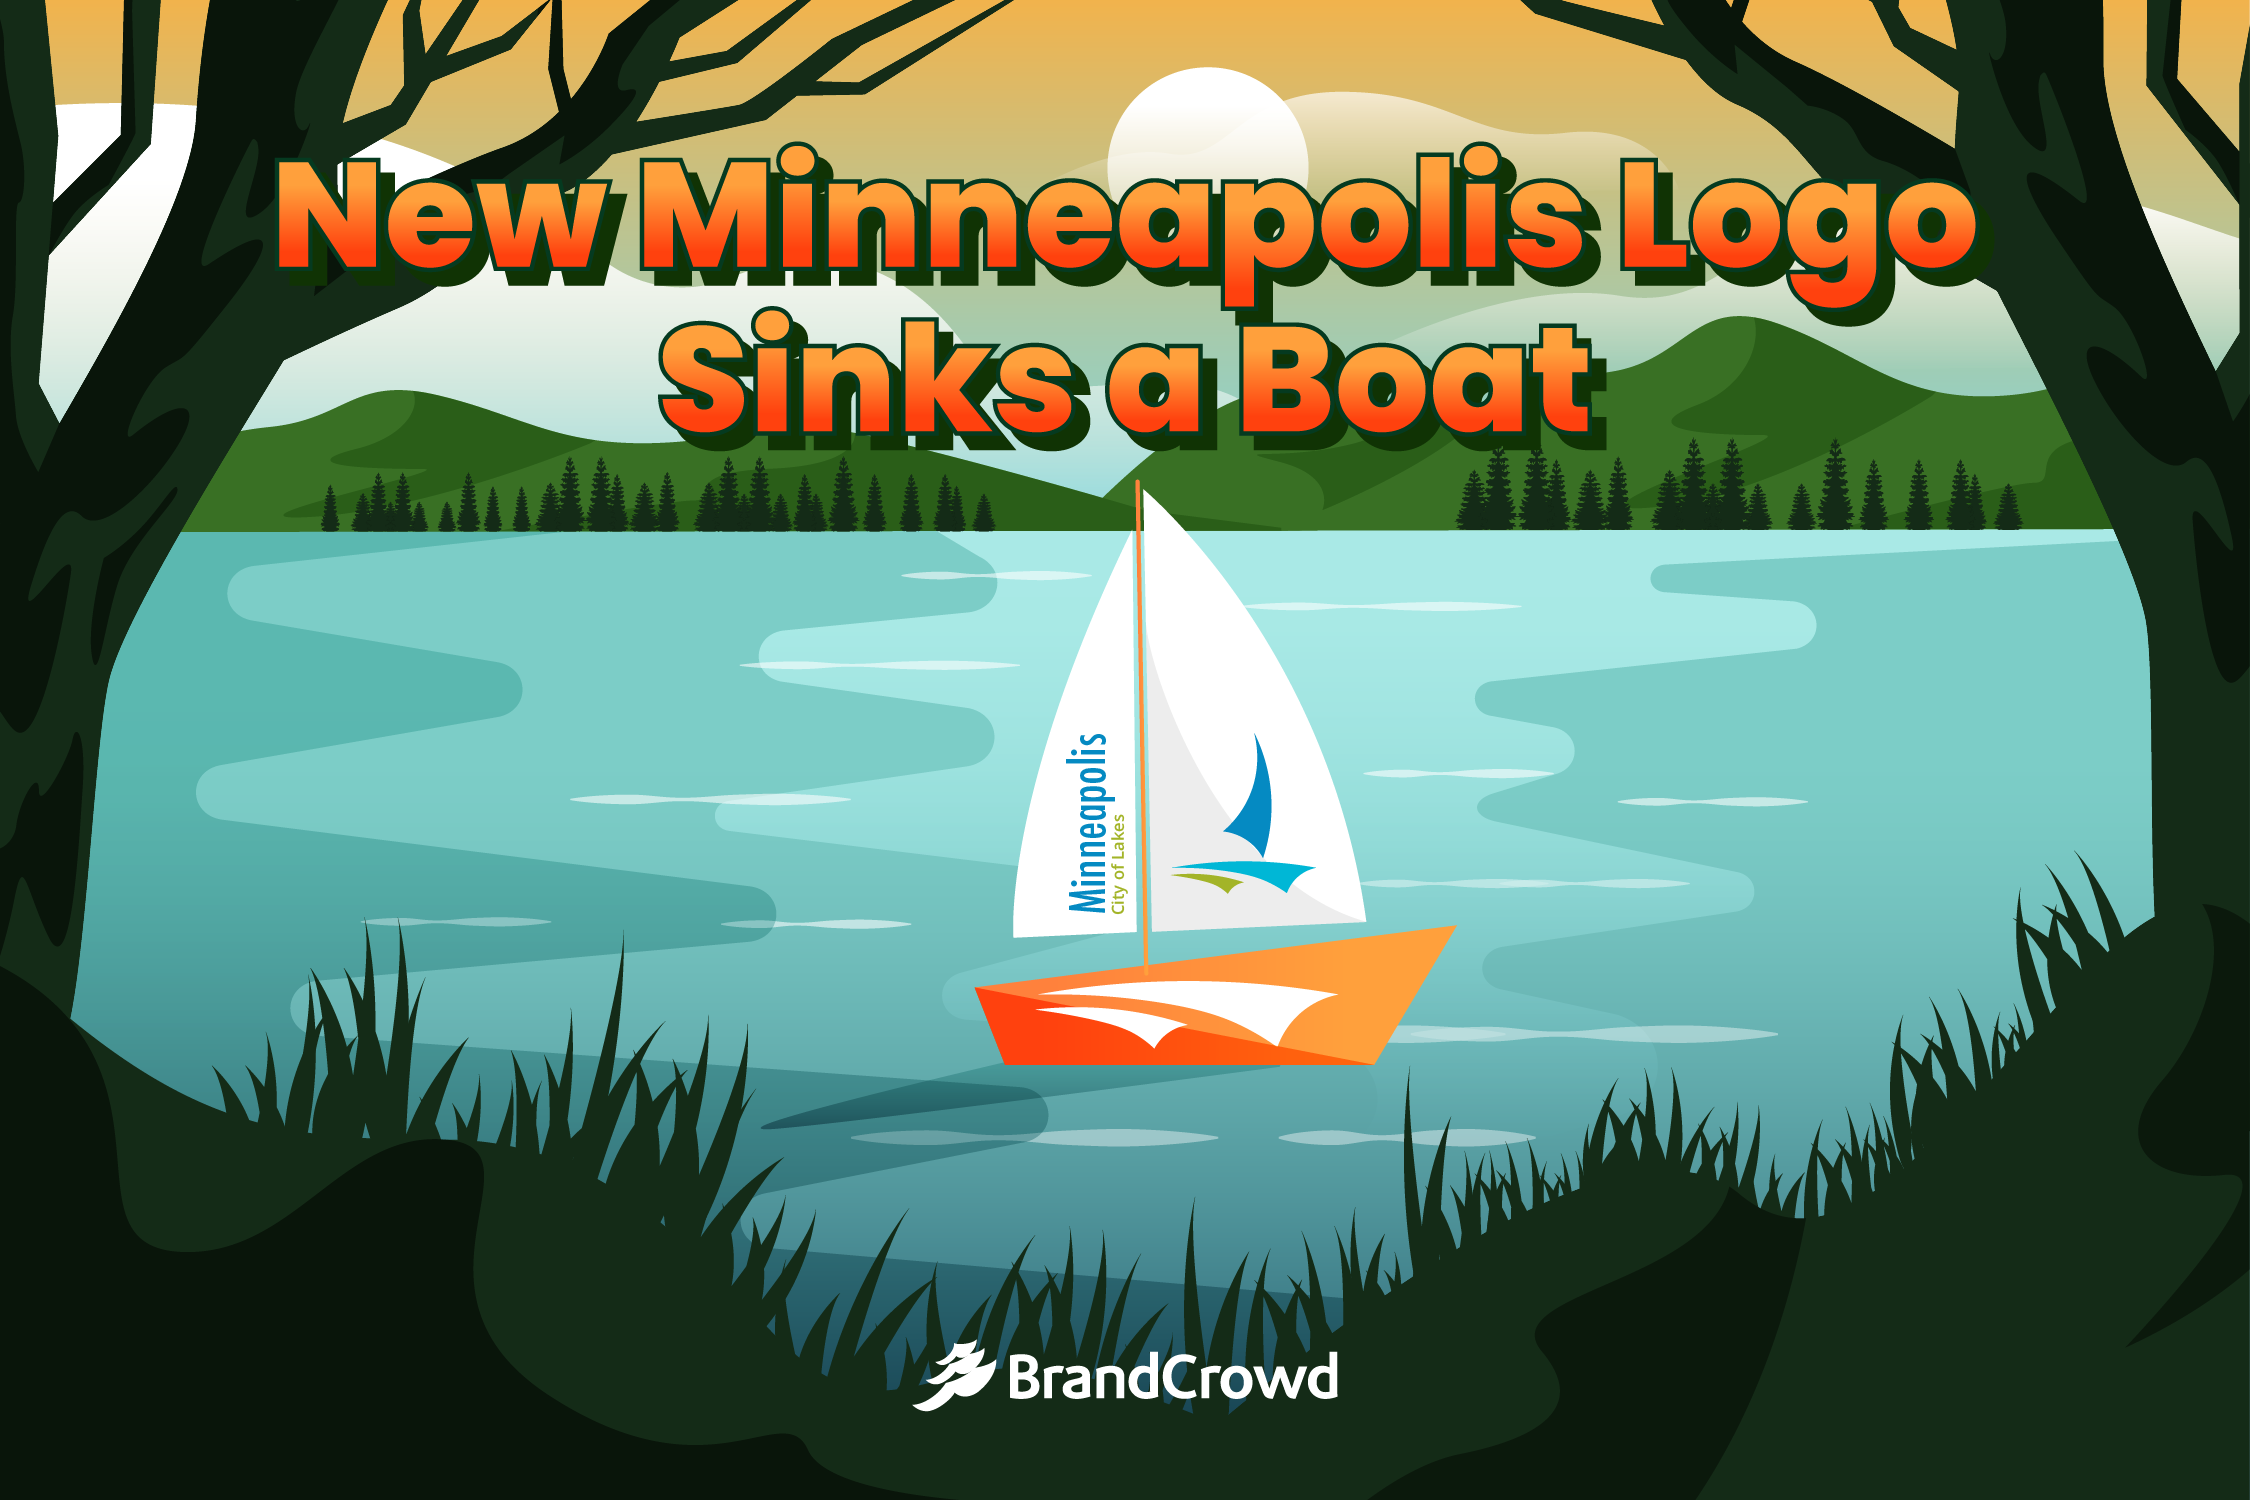 the-header-features-a-sailboat-with-the-old-and-new-logos-of-minneapolis-with-a-typography-of-the-blog-title-seen-above